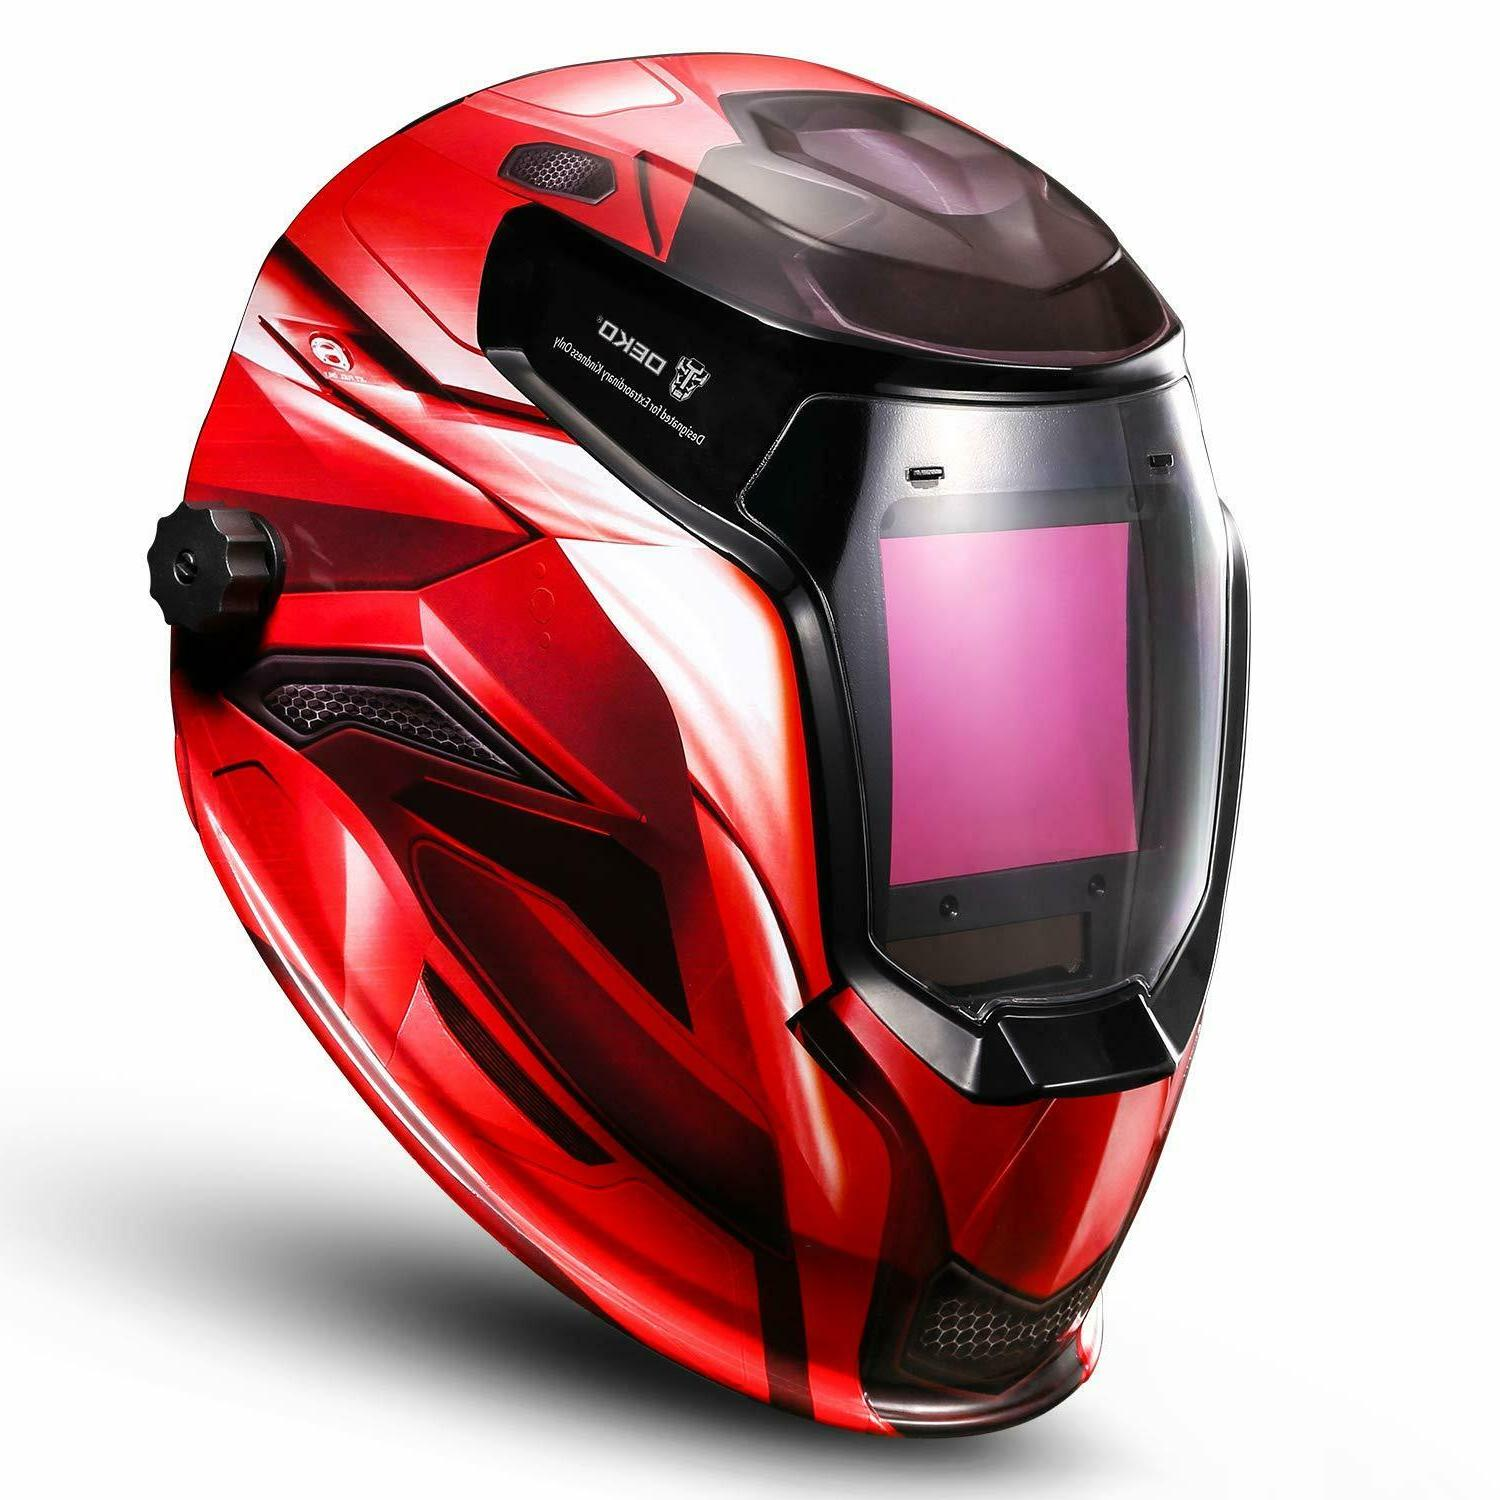 DEKO Auto Darkening Solar Powered Mig Tig Arc Welding Helmet